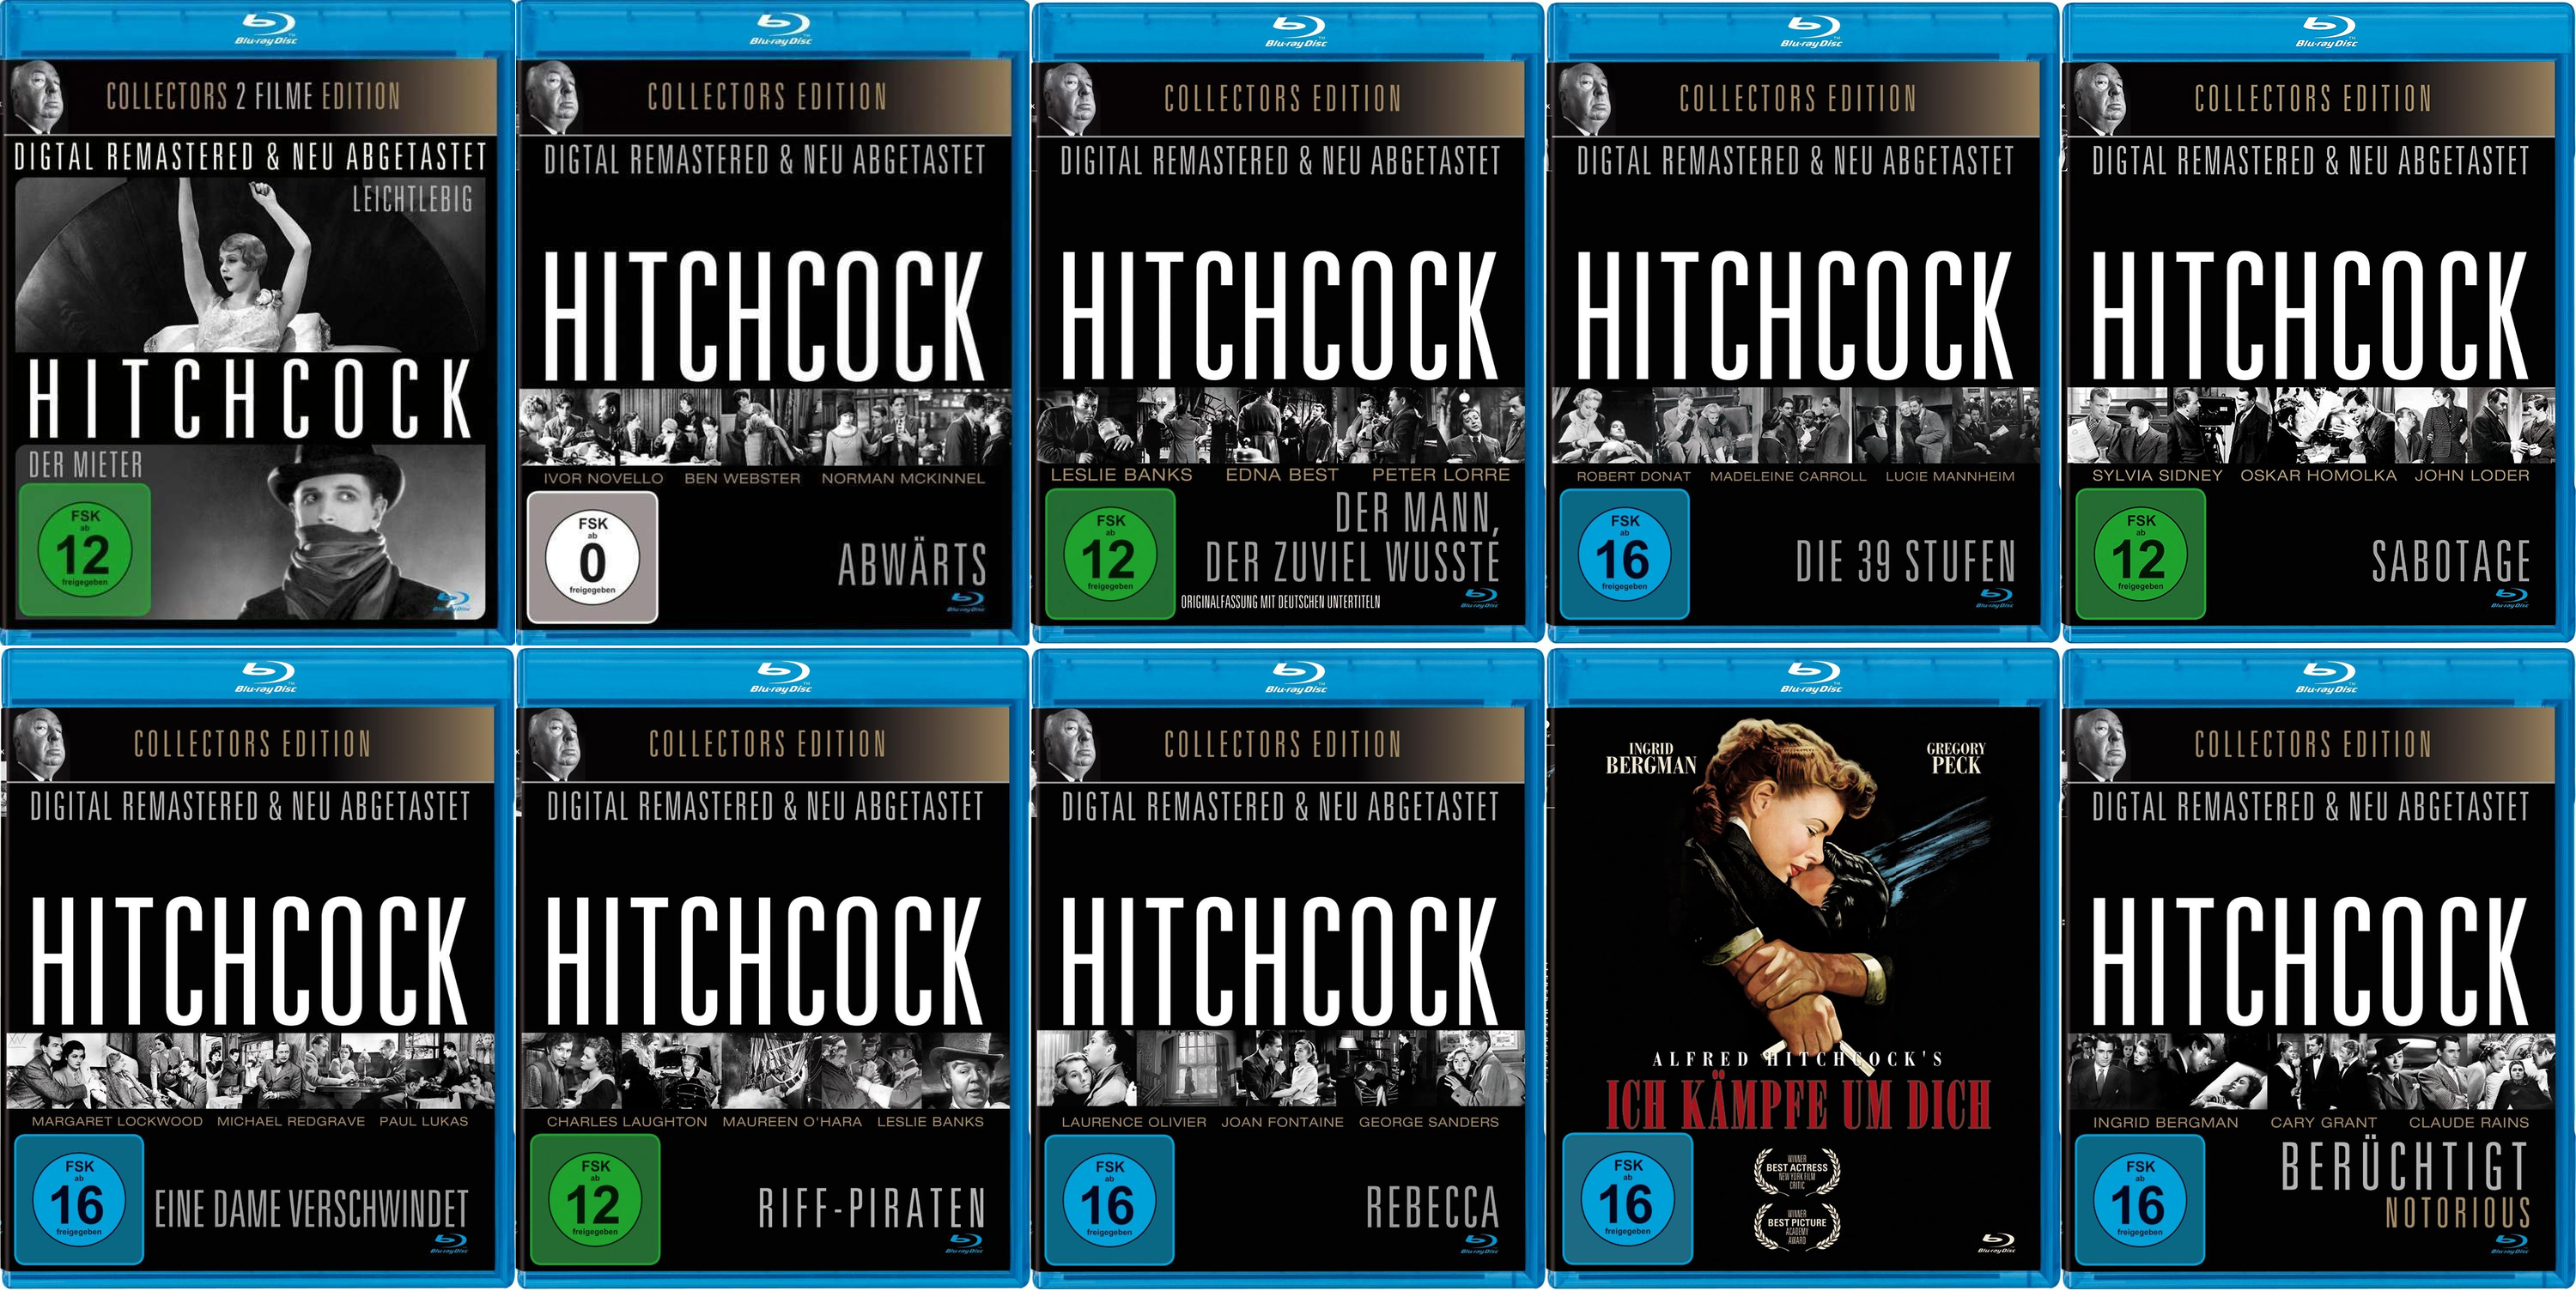 Alfred Hitchcock 1926-1946 German bootleg Blu-rays all from the same company, Great Movies/Indigo/WME Home-Entertainment – they can't make their minds up either.